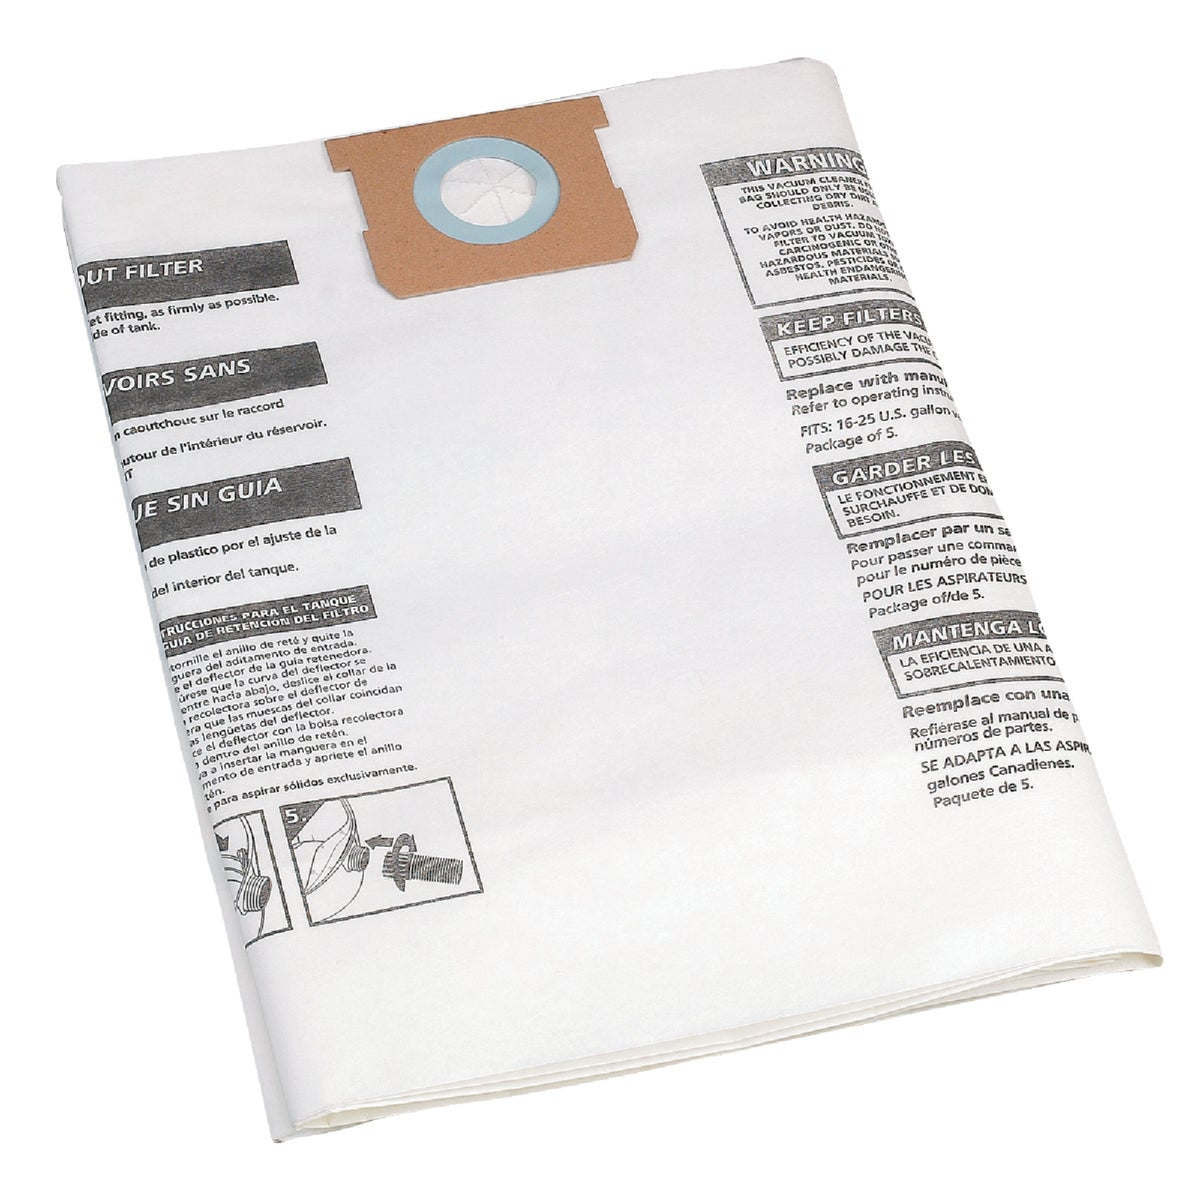 LRG PAPER COLLECTION BAG - 9066300 by Shop Vac Corp